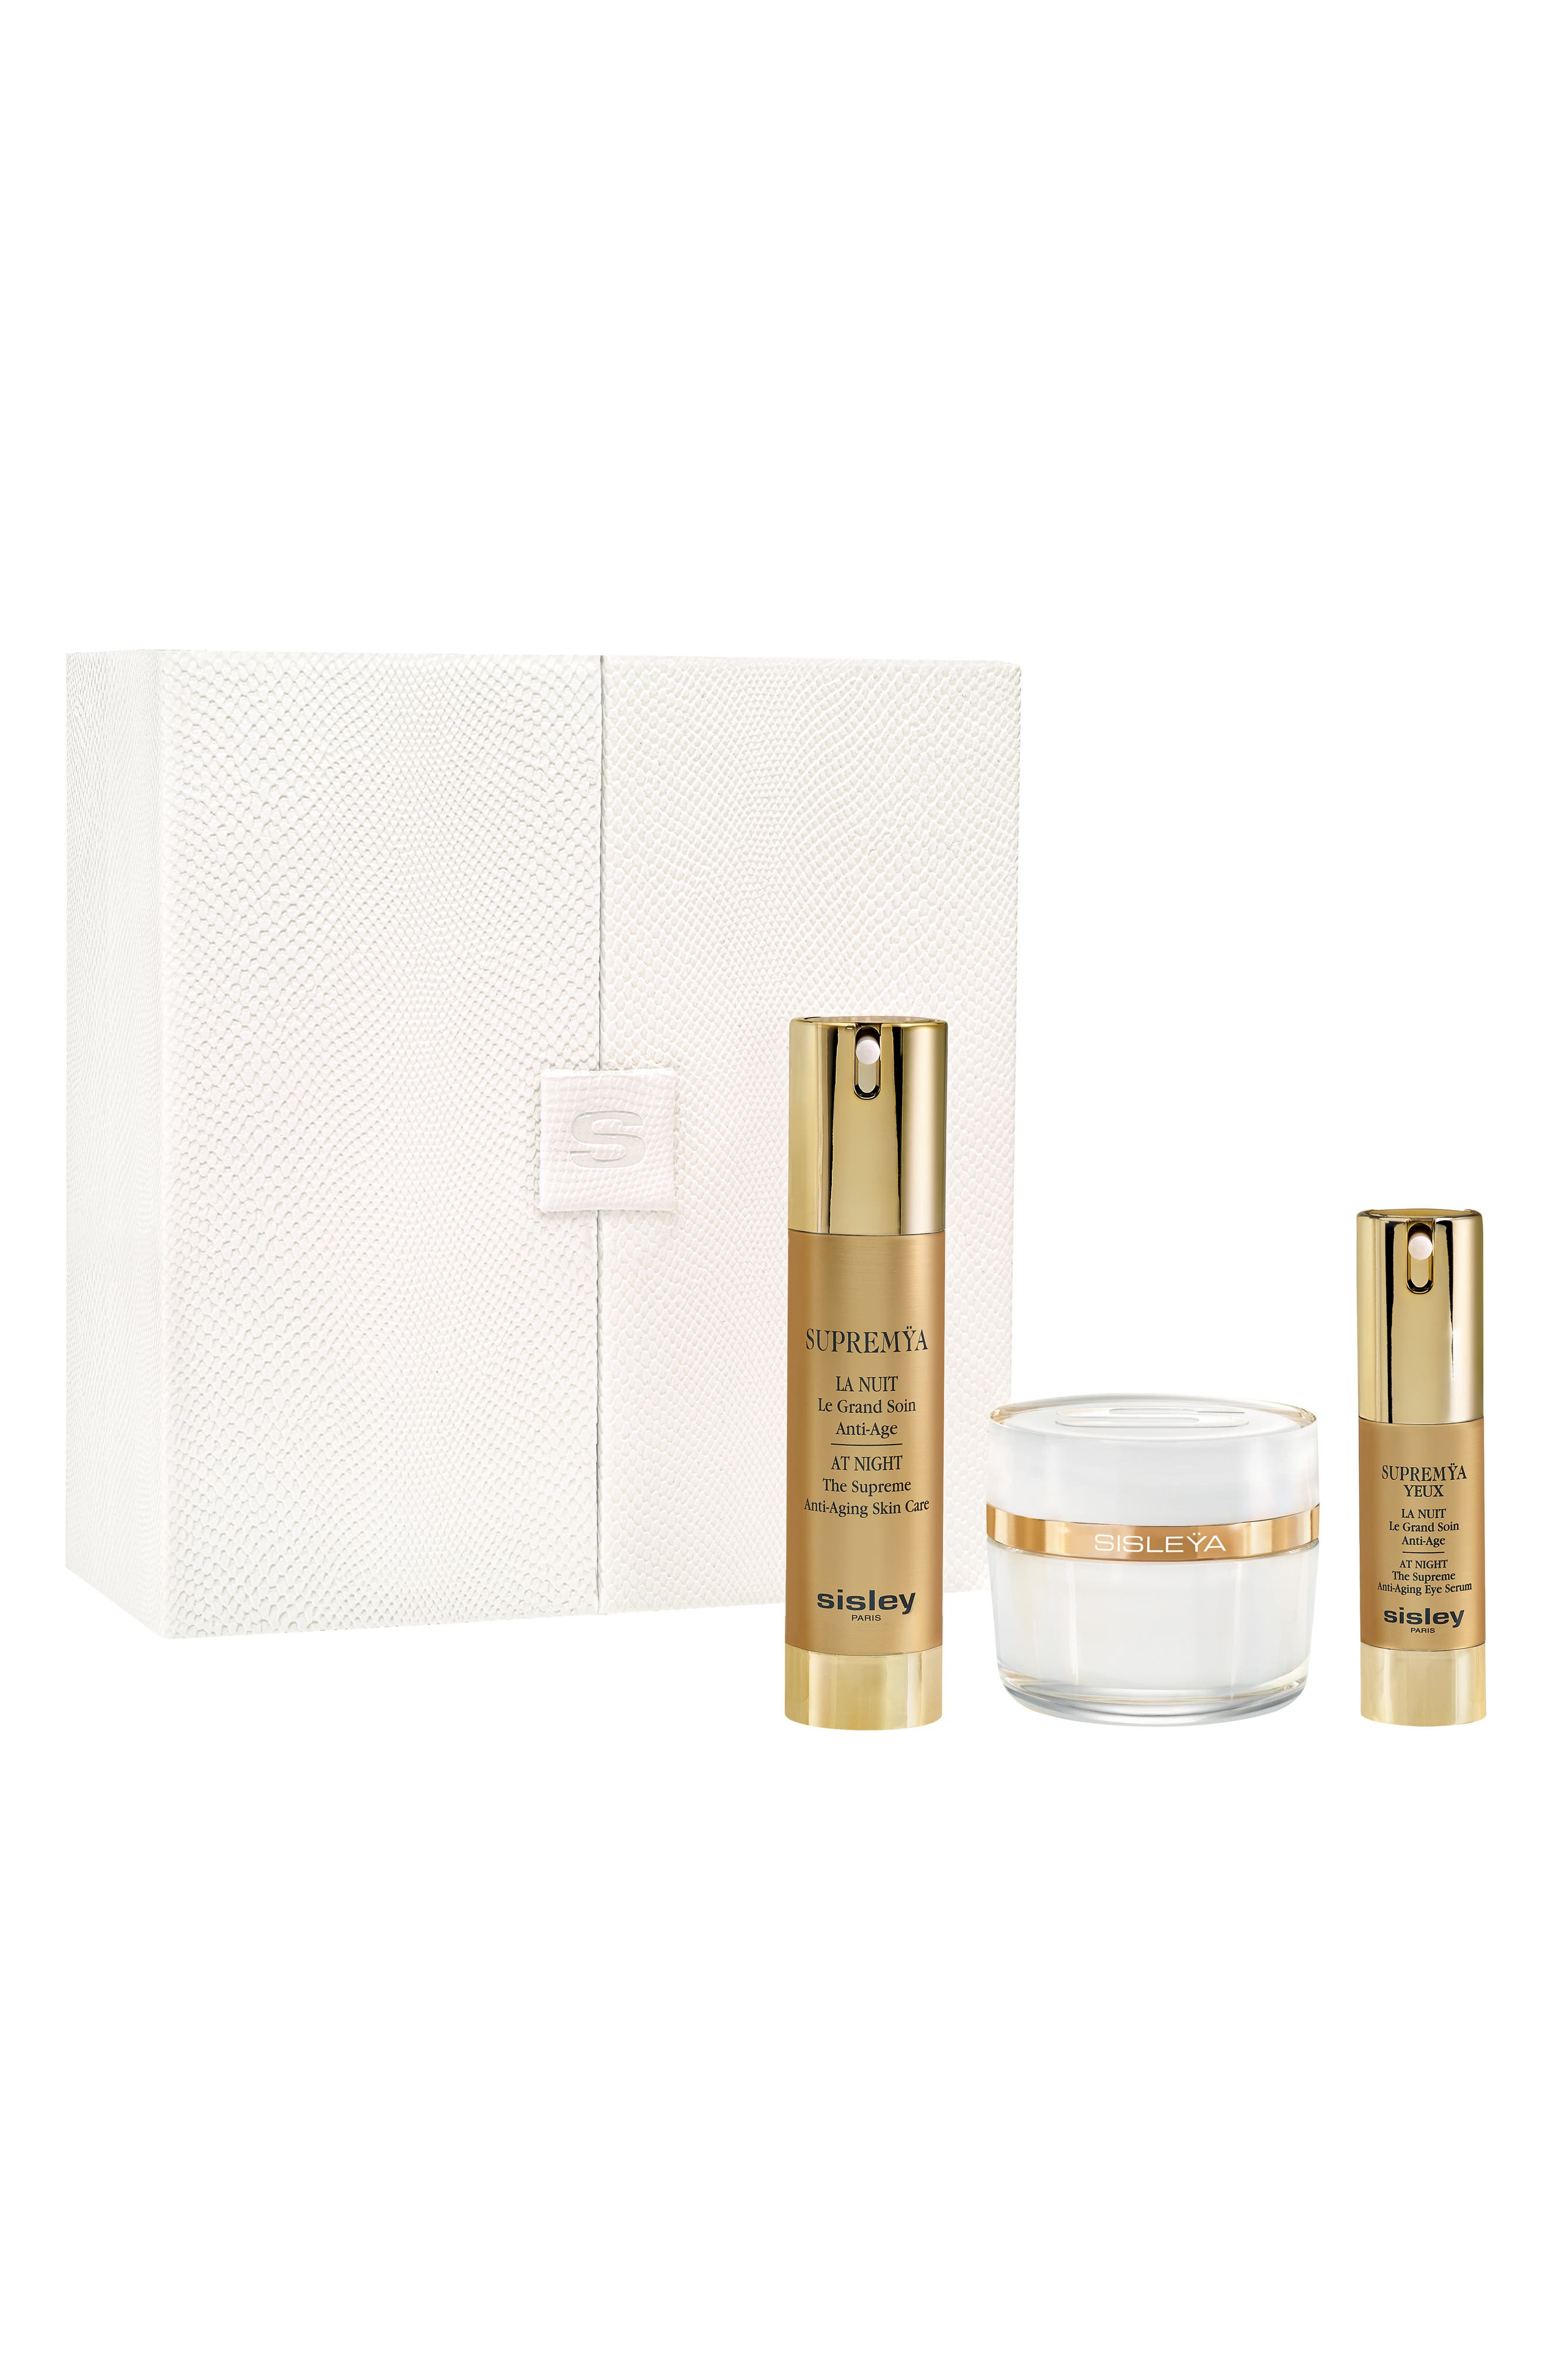 Sisley Paris Anti-Aging Prestige Coffret ($1,630 Value)